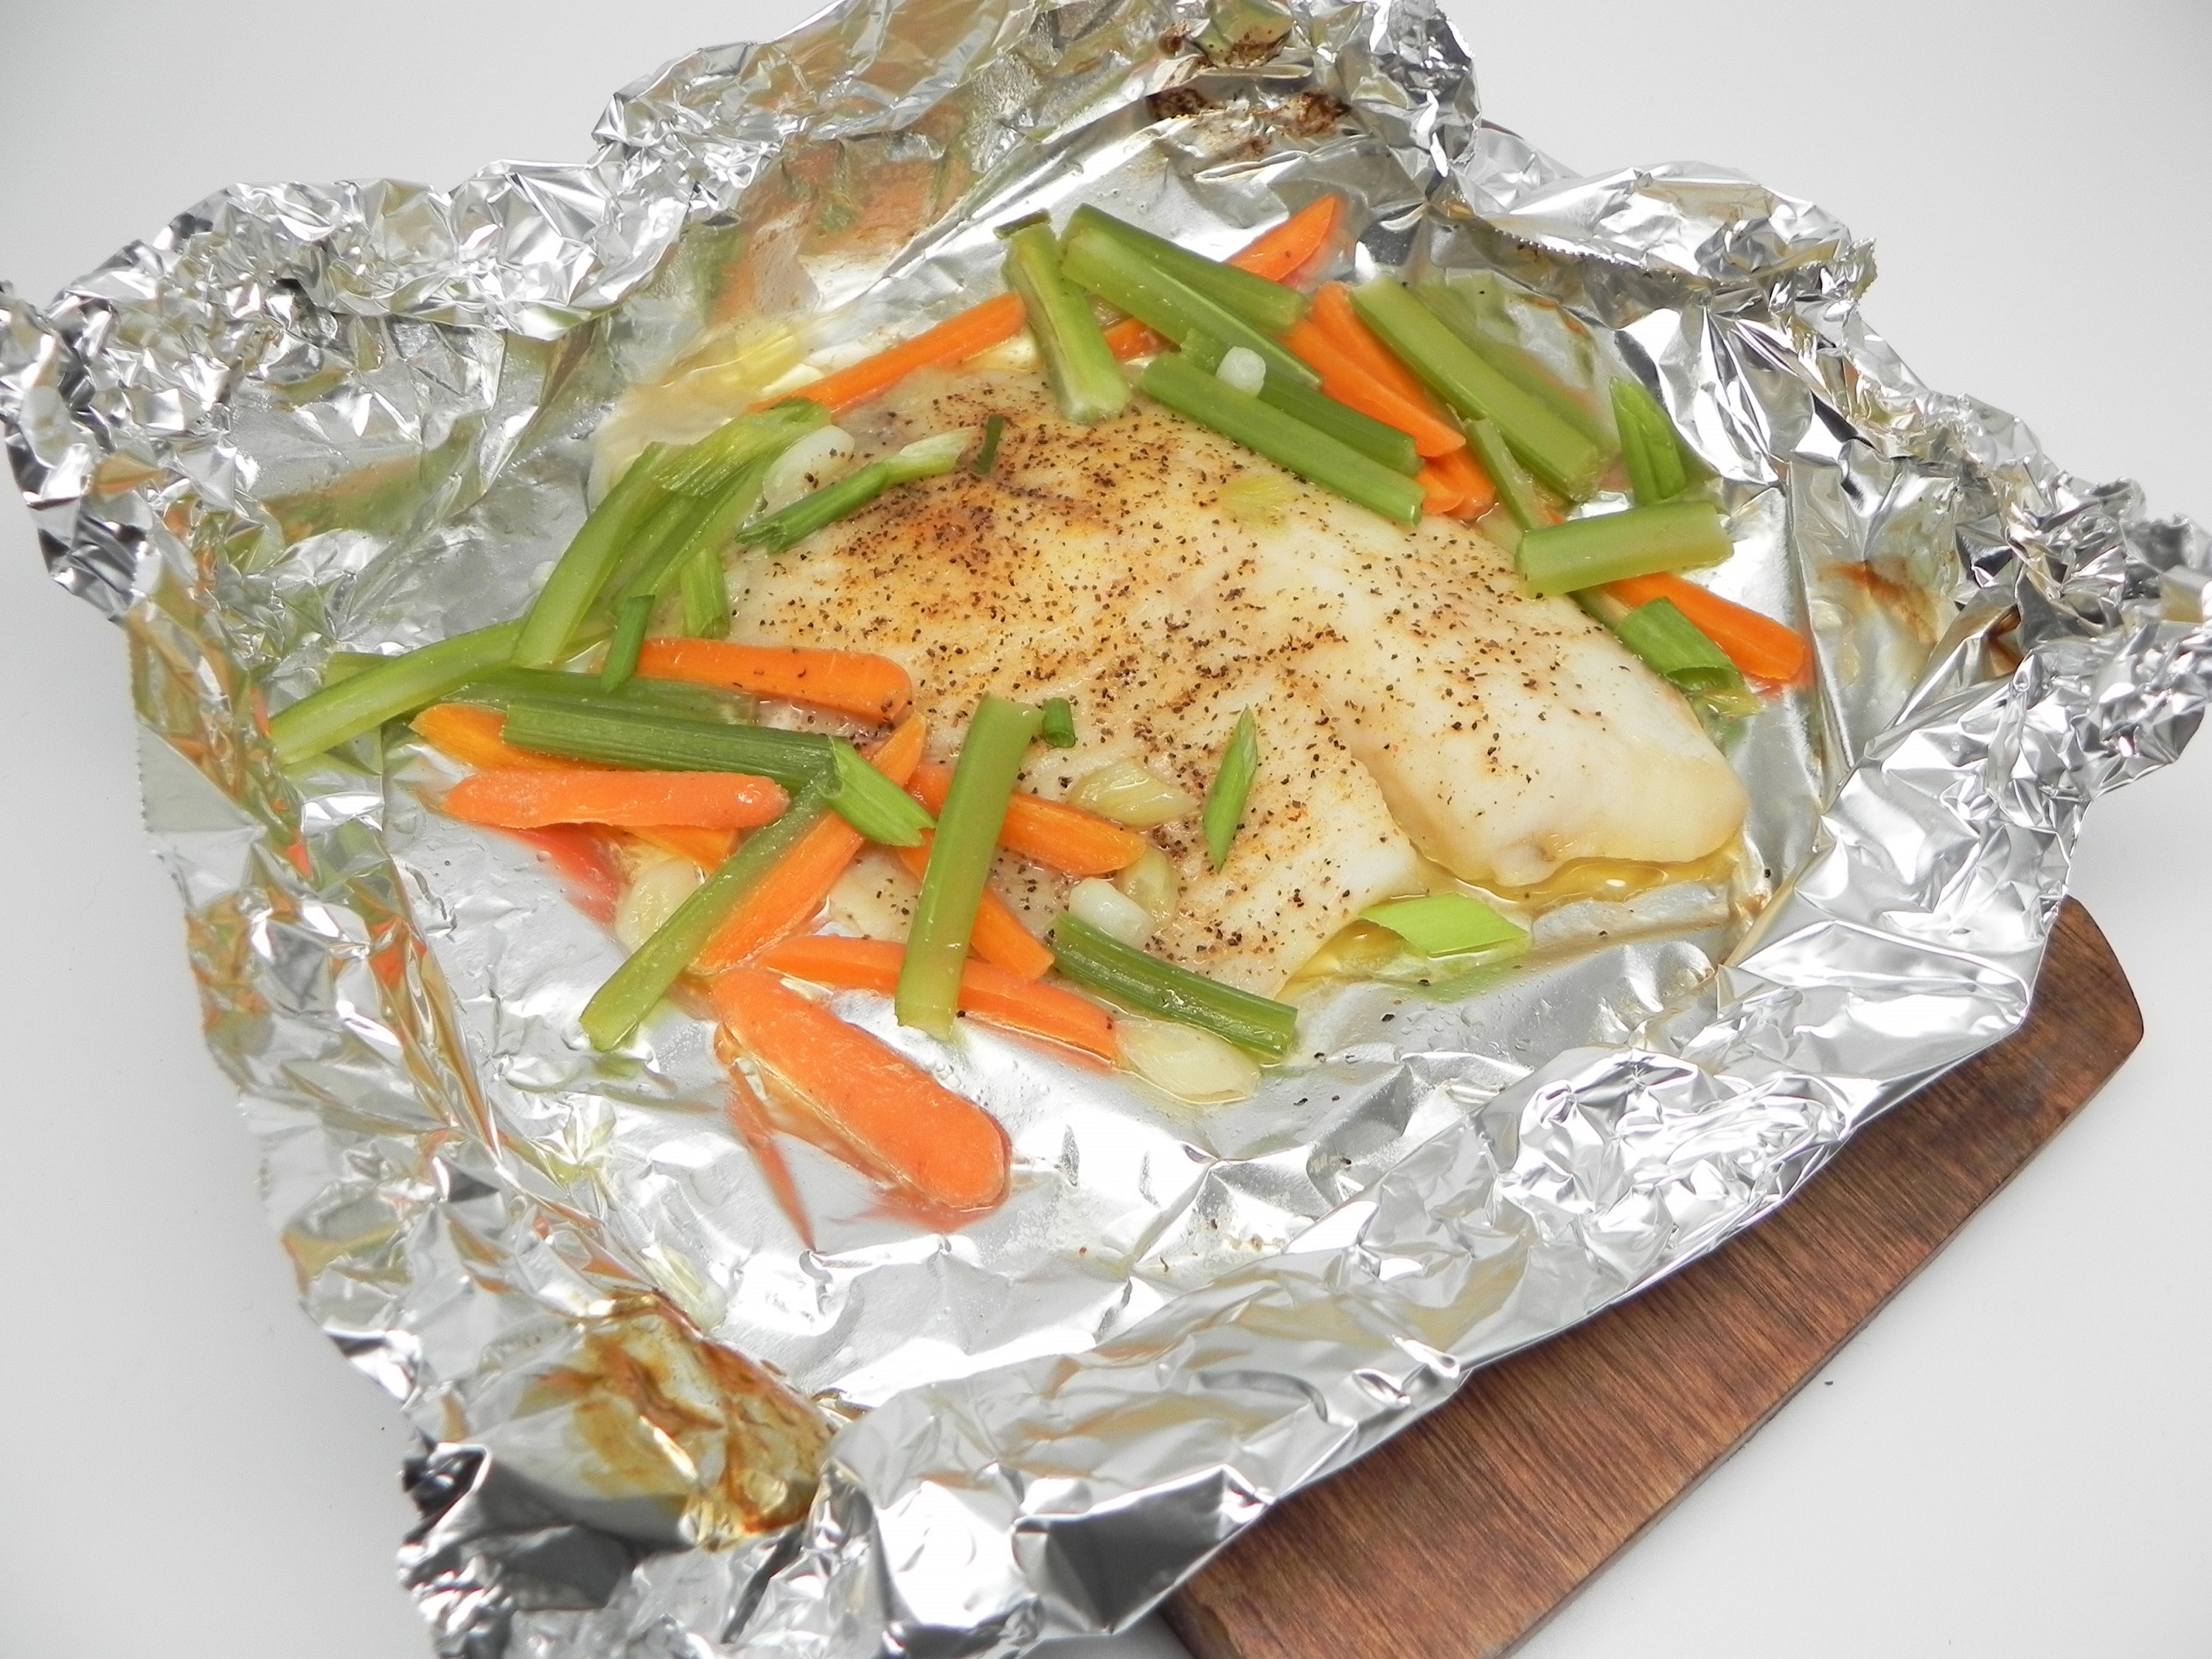 Baked Tilapia with Veggies in Foil